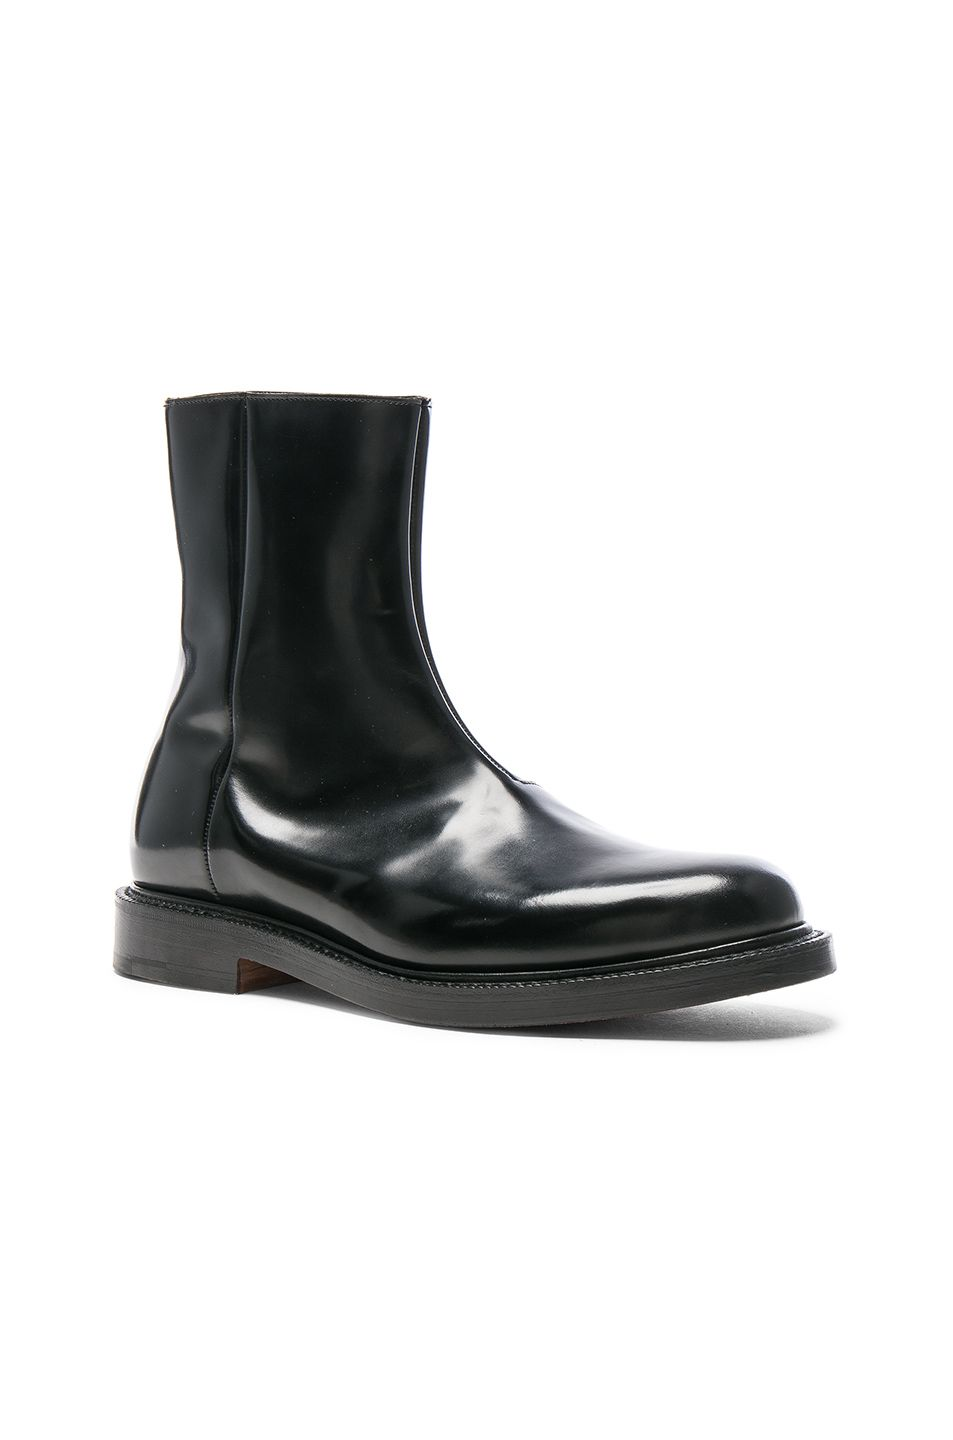 Clearance Eastbay + Churchs Logo-embossed Leather Boots VETEMENTS New Styles Cheap Price Outlet Best Seller Great Deals Online Quality From China Cheap TeEYjcpaL0